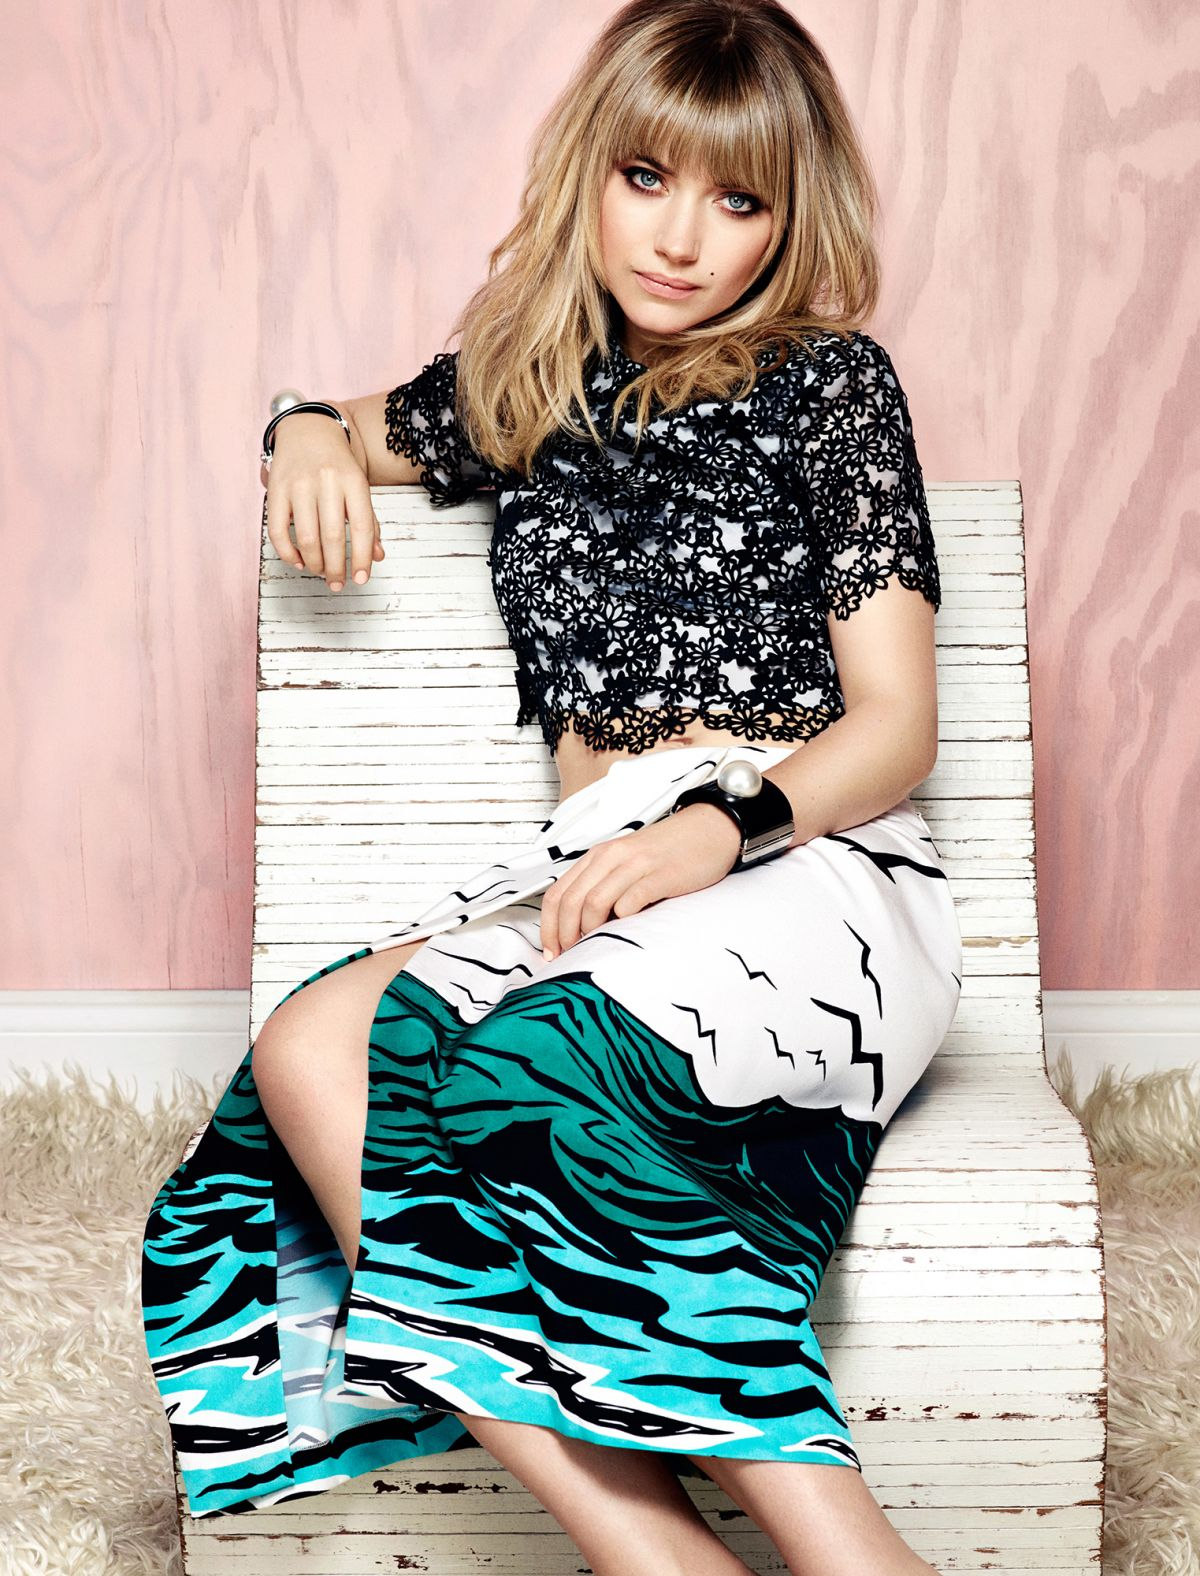 IMOGEN POOTS - Jason Kim Photoshoot for Flare Magazine